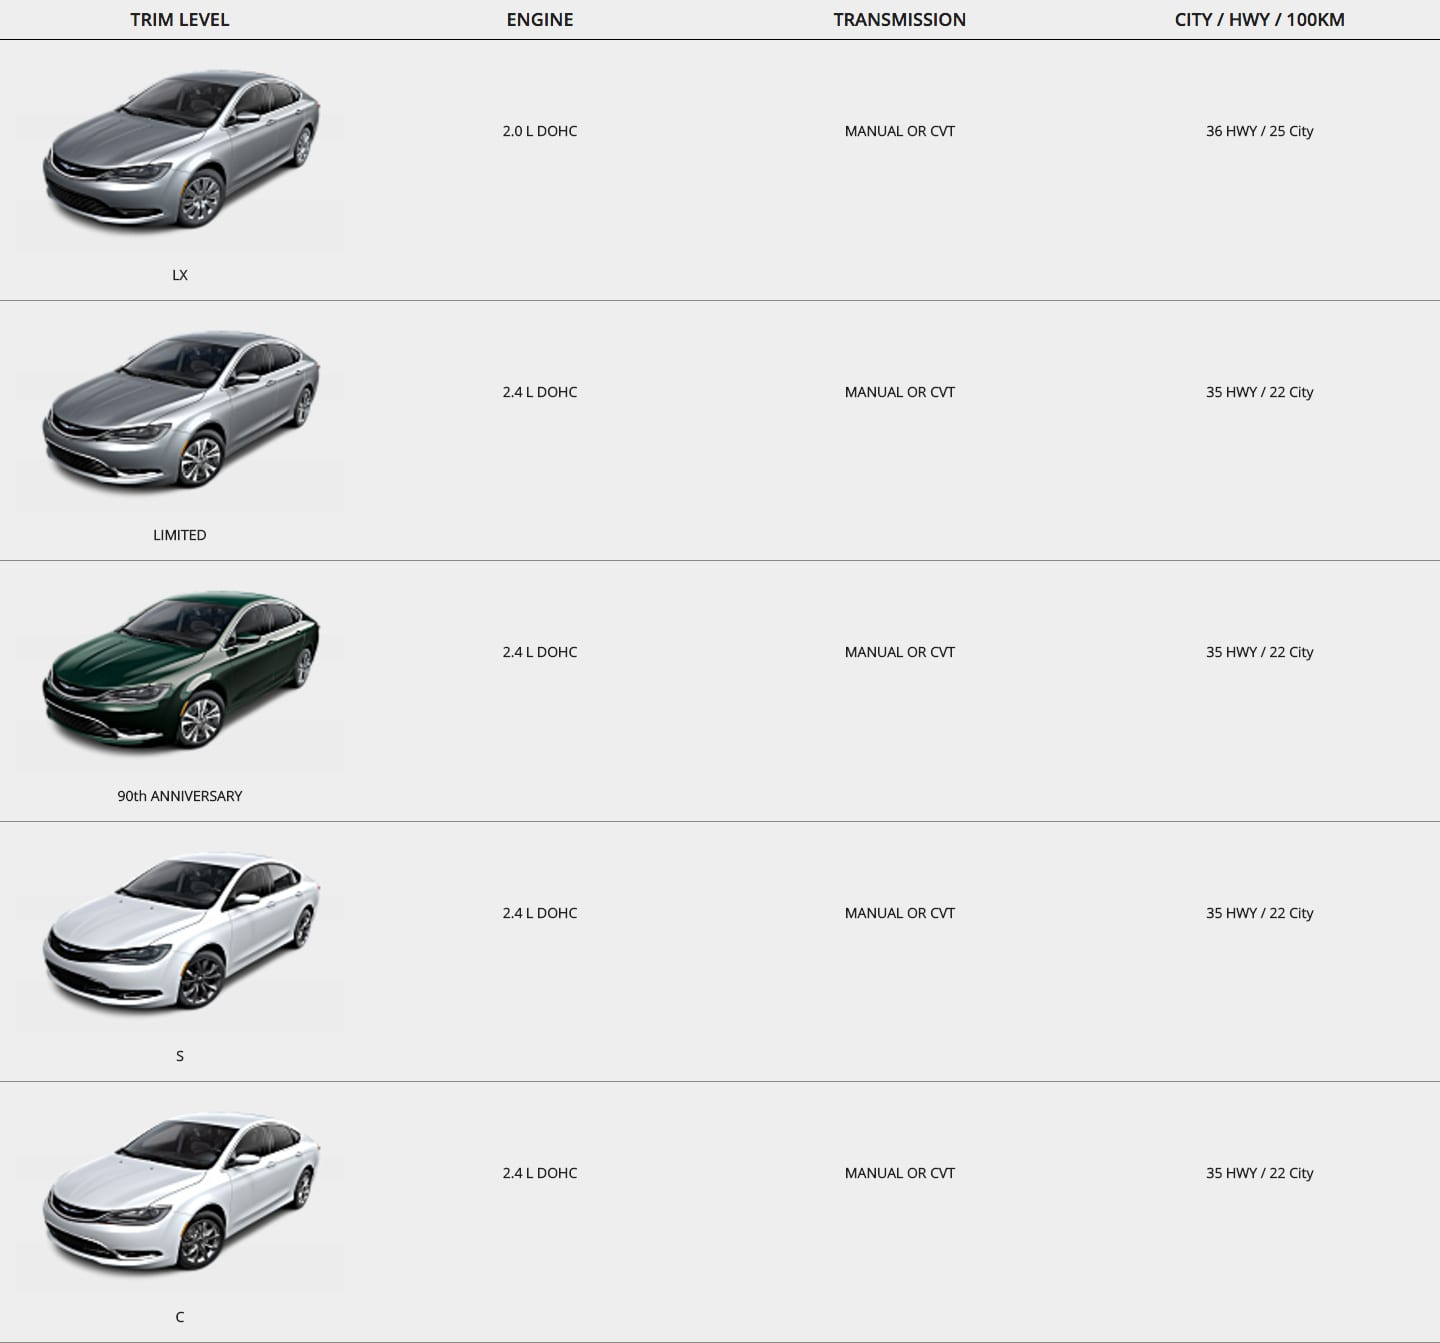 Chrysler 200 Trim Comparisons